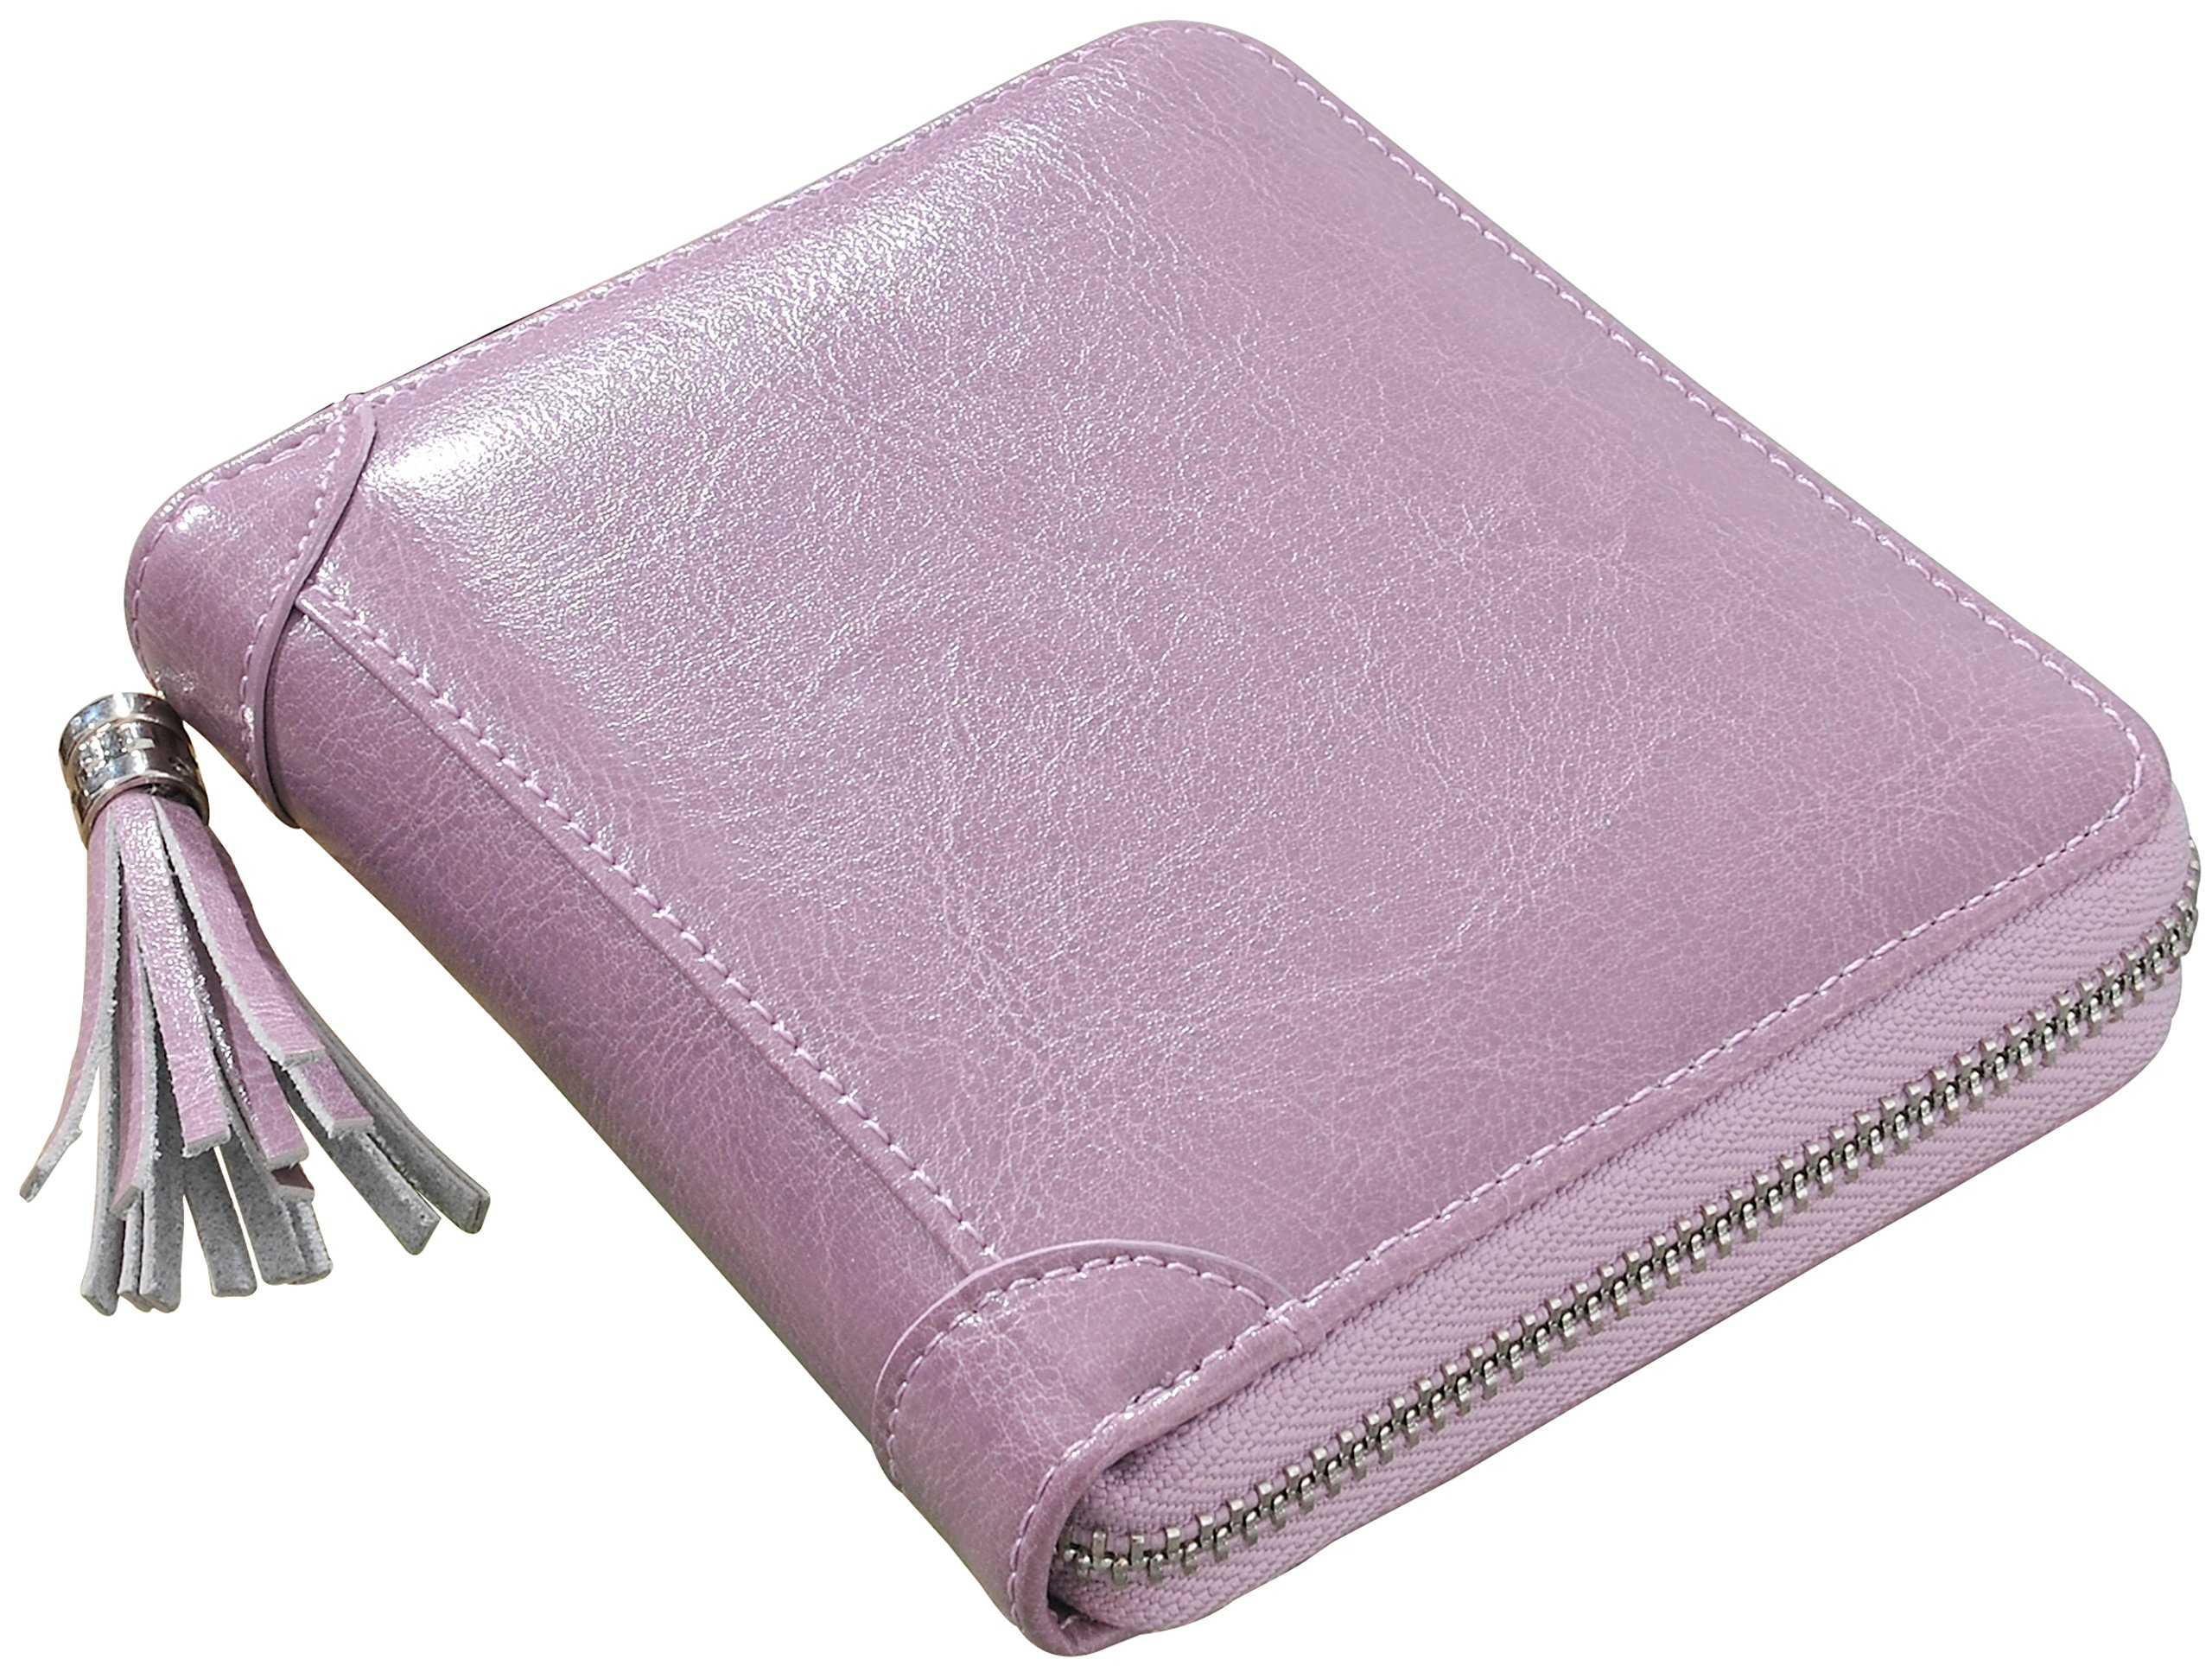 Yuhan Pretty Womens Credit Card Wallet RFID Small Leather ID Card Holder Case (40 Card Slots - Purple) by Yuhan Pretty (Image #7)